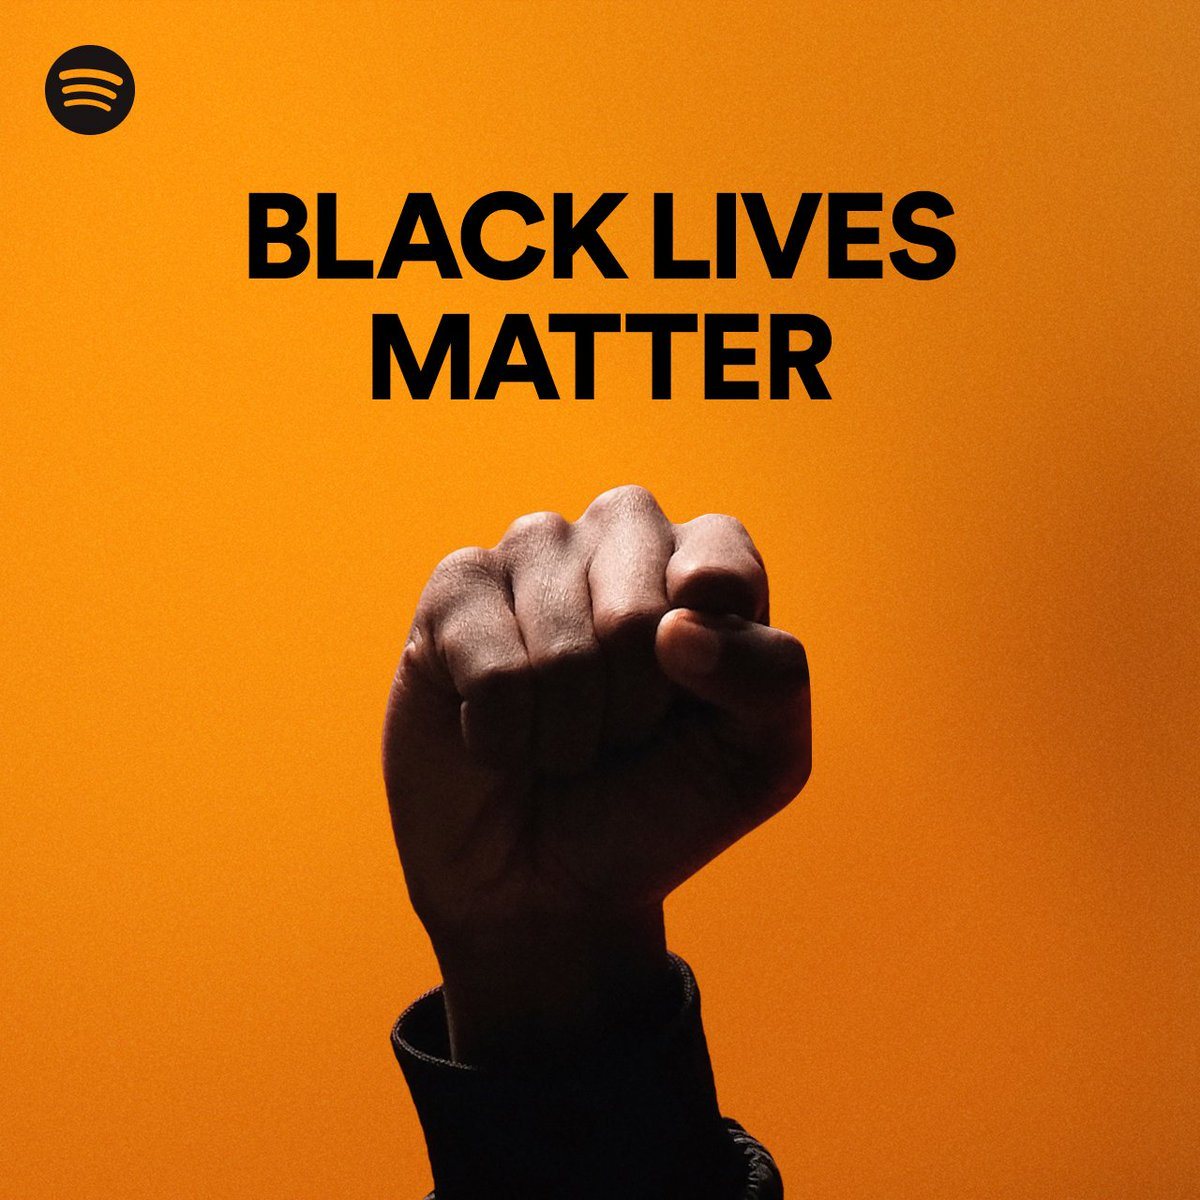 In the face of racial injustice, inequality and the oppression of Black lives, we recognize the power of music to heal, unite and drive change.